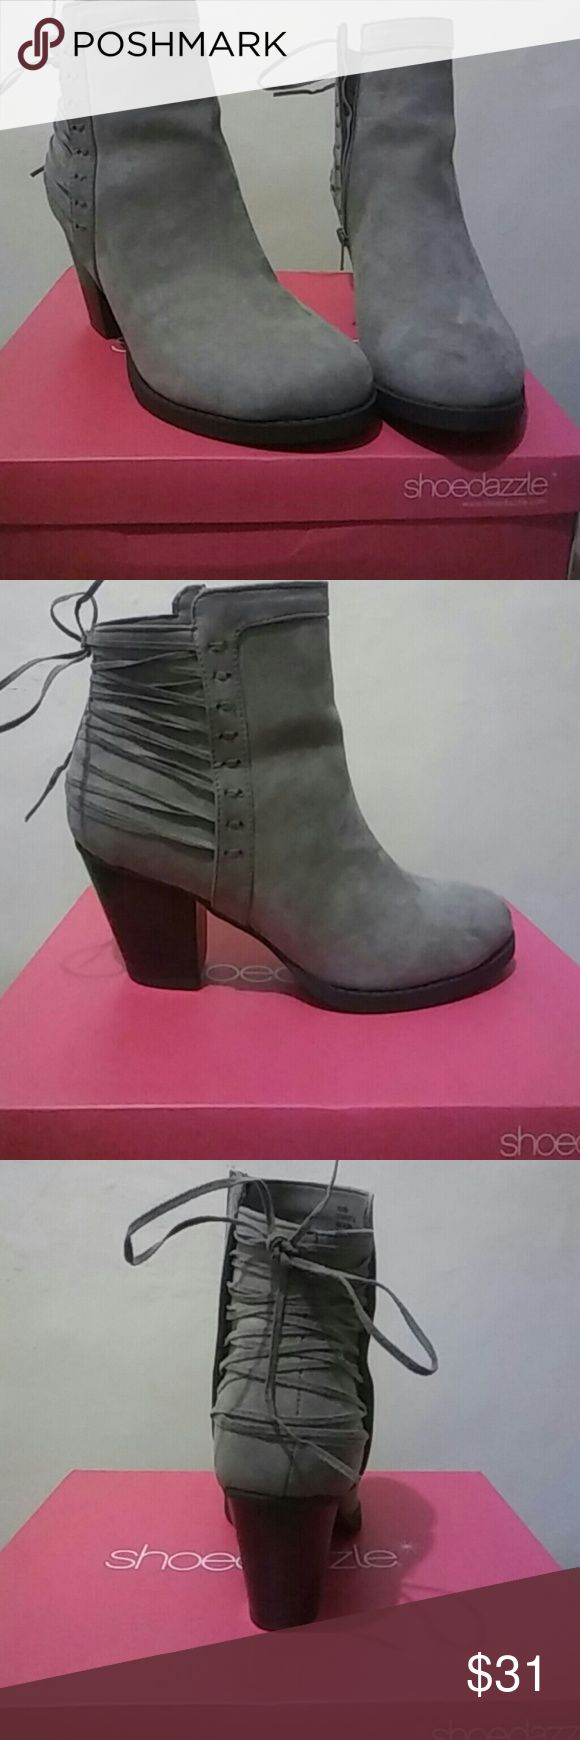 Grey shoe dazzle bootie heel Grey shoe dazzle bootie heel size 8 but it runs big so it fits more for an 8 1/2. These have only been worn around the house for 20 minutes. Shoe Dazzle Shoes Ankle Boots & Booties